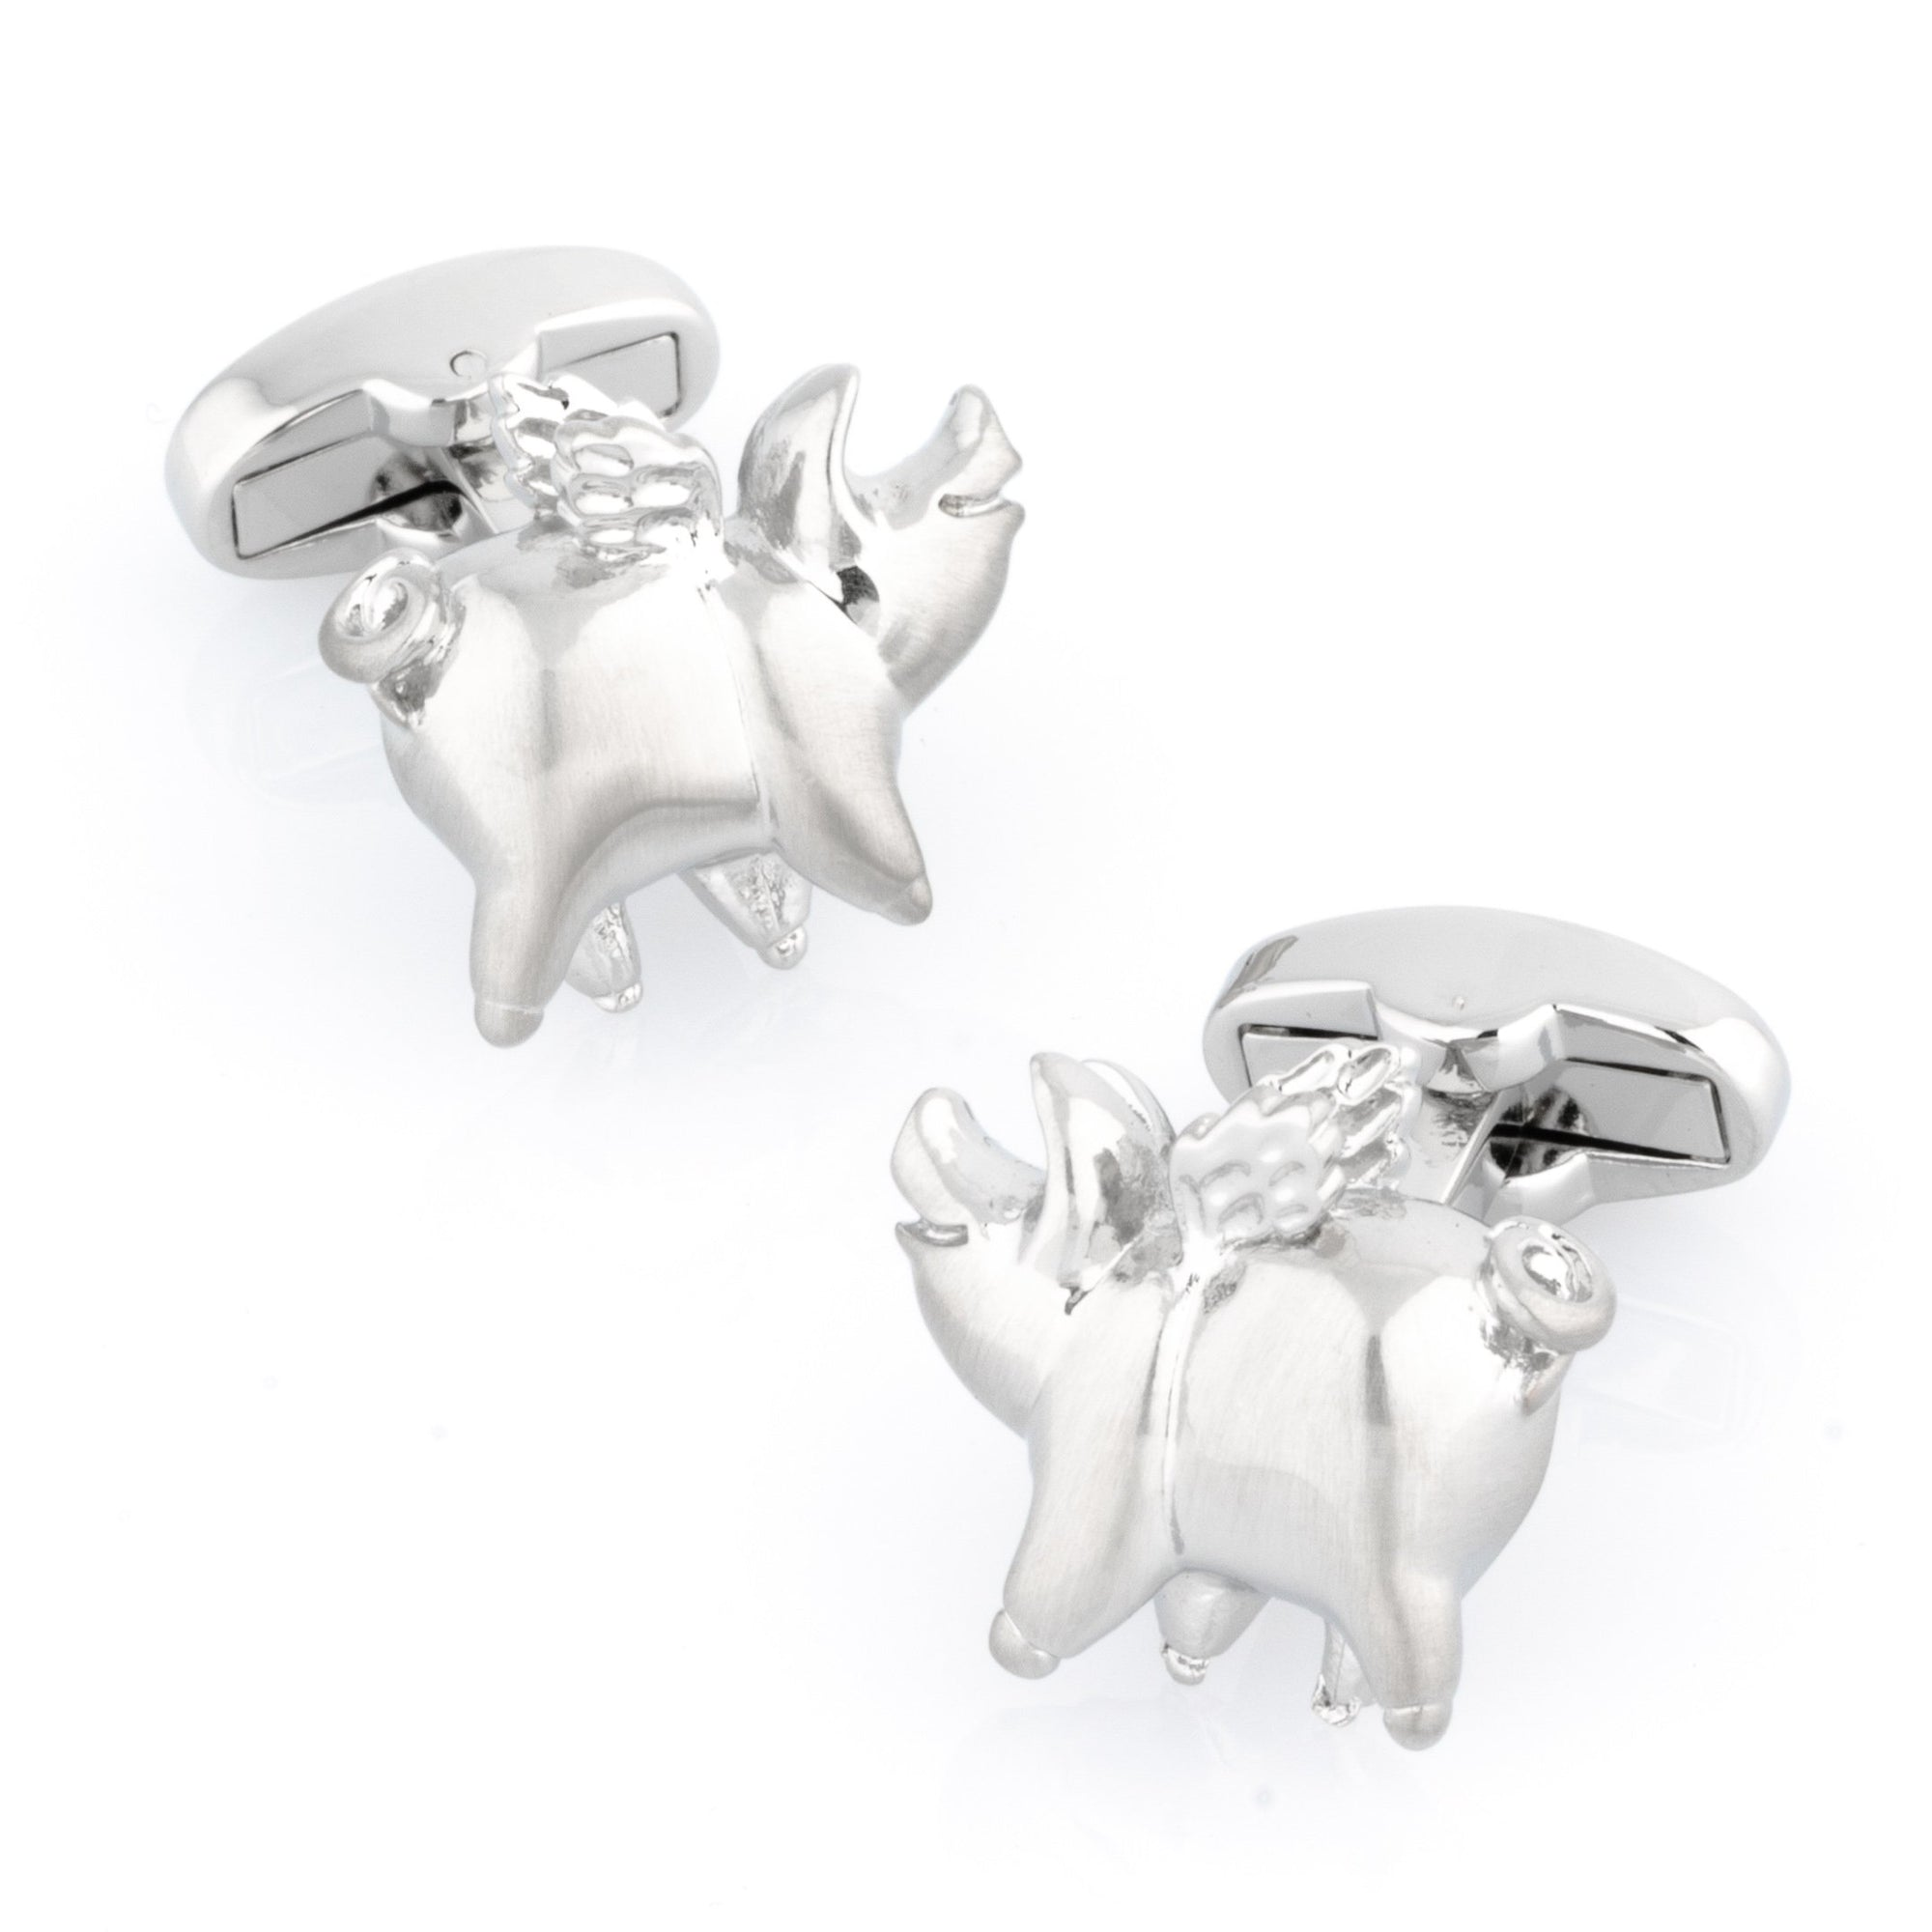 Pigs Might Fly Cufflinks Novelty Cufflinks Clinks Australia Pigs Might Fly Cufflinks